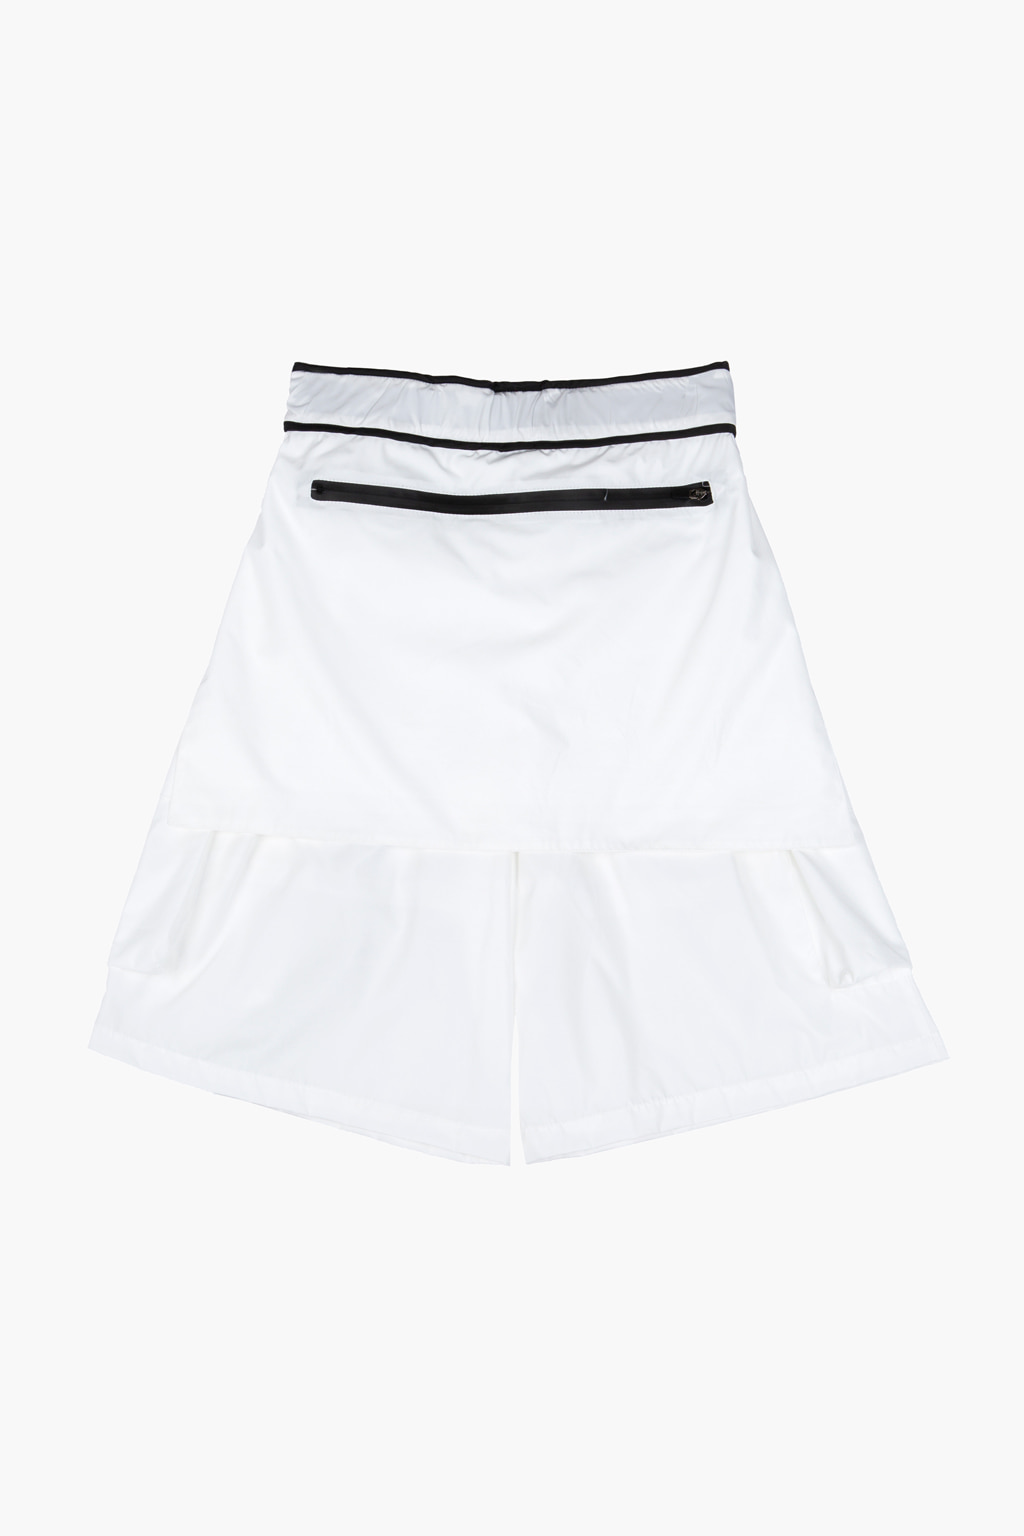 Obi Belt Detail Cargo Pocket Shorts - white